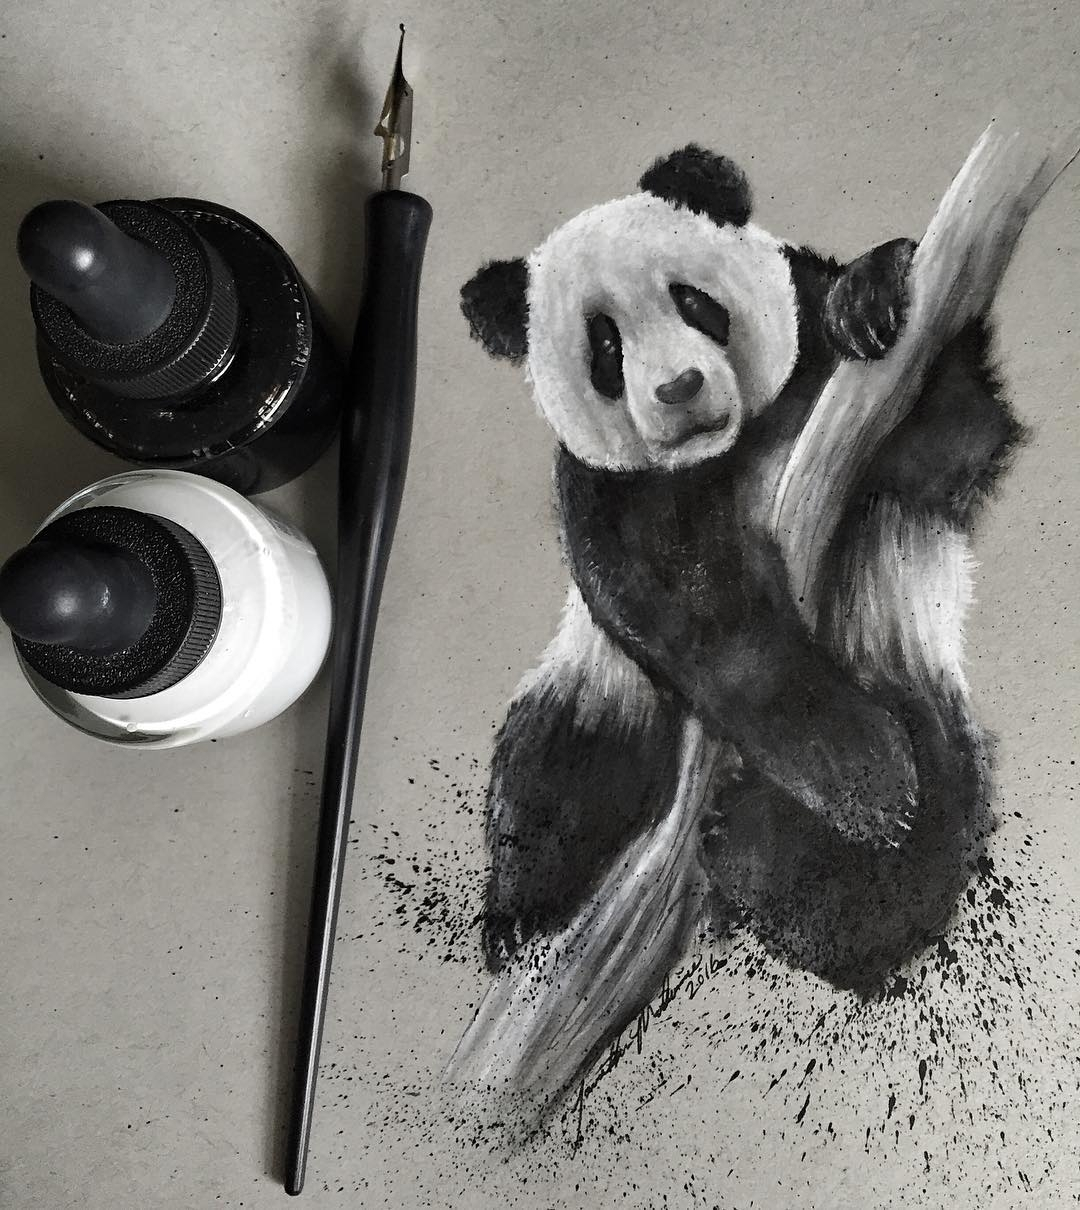 15-Inks-and-Pandas-Jonathan-Martinez-Art-of-the-Endangered-Paintings-and-Drawings-www-designstack-co